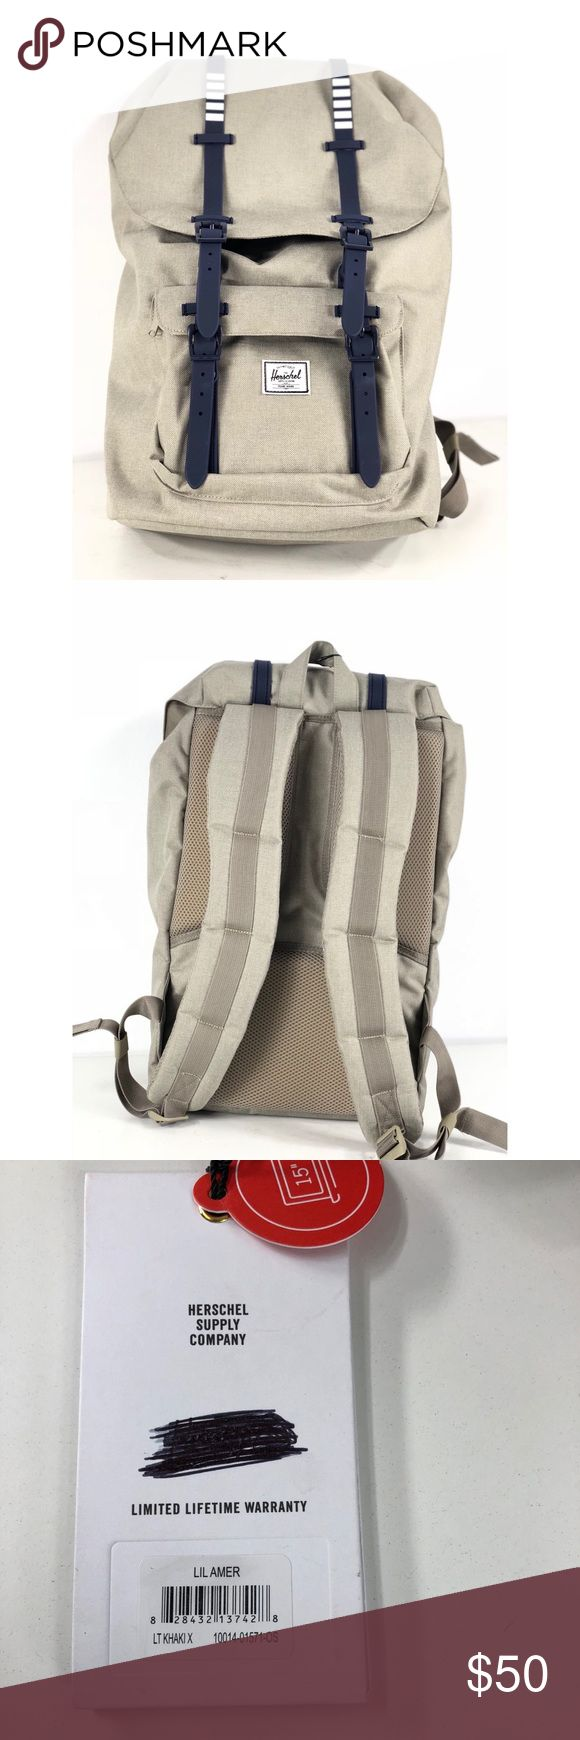 Herschel Supply company lil Amer Backpack Herschel Supply company lil Amer Backpack Herschel Supply Company Bags Backpacks